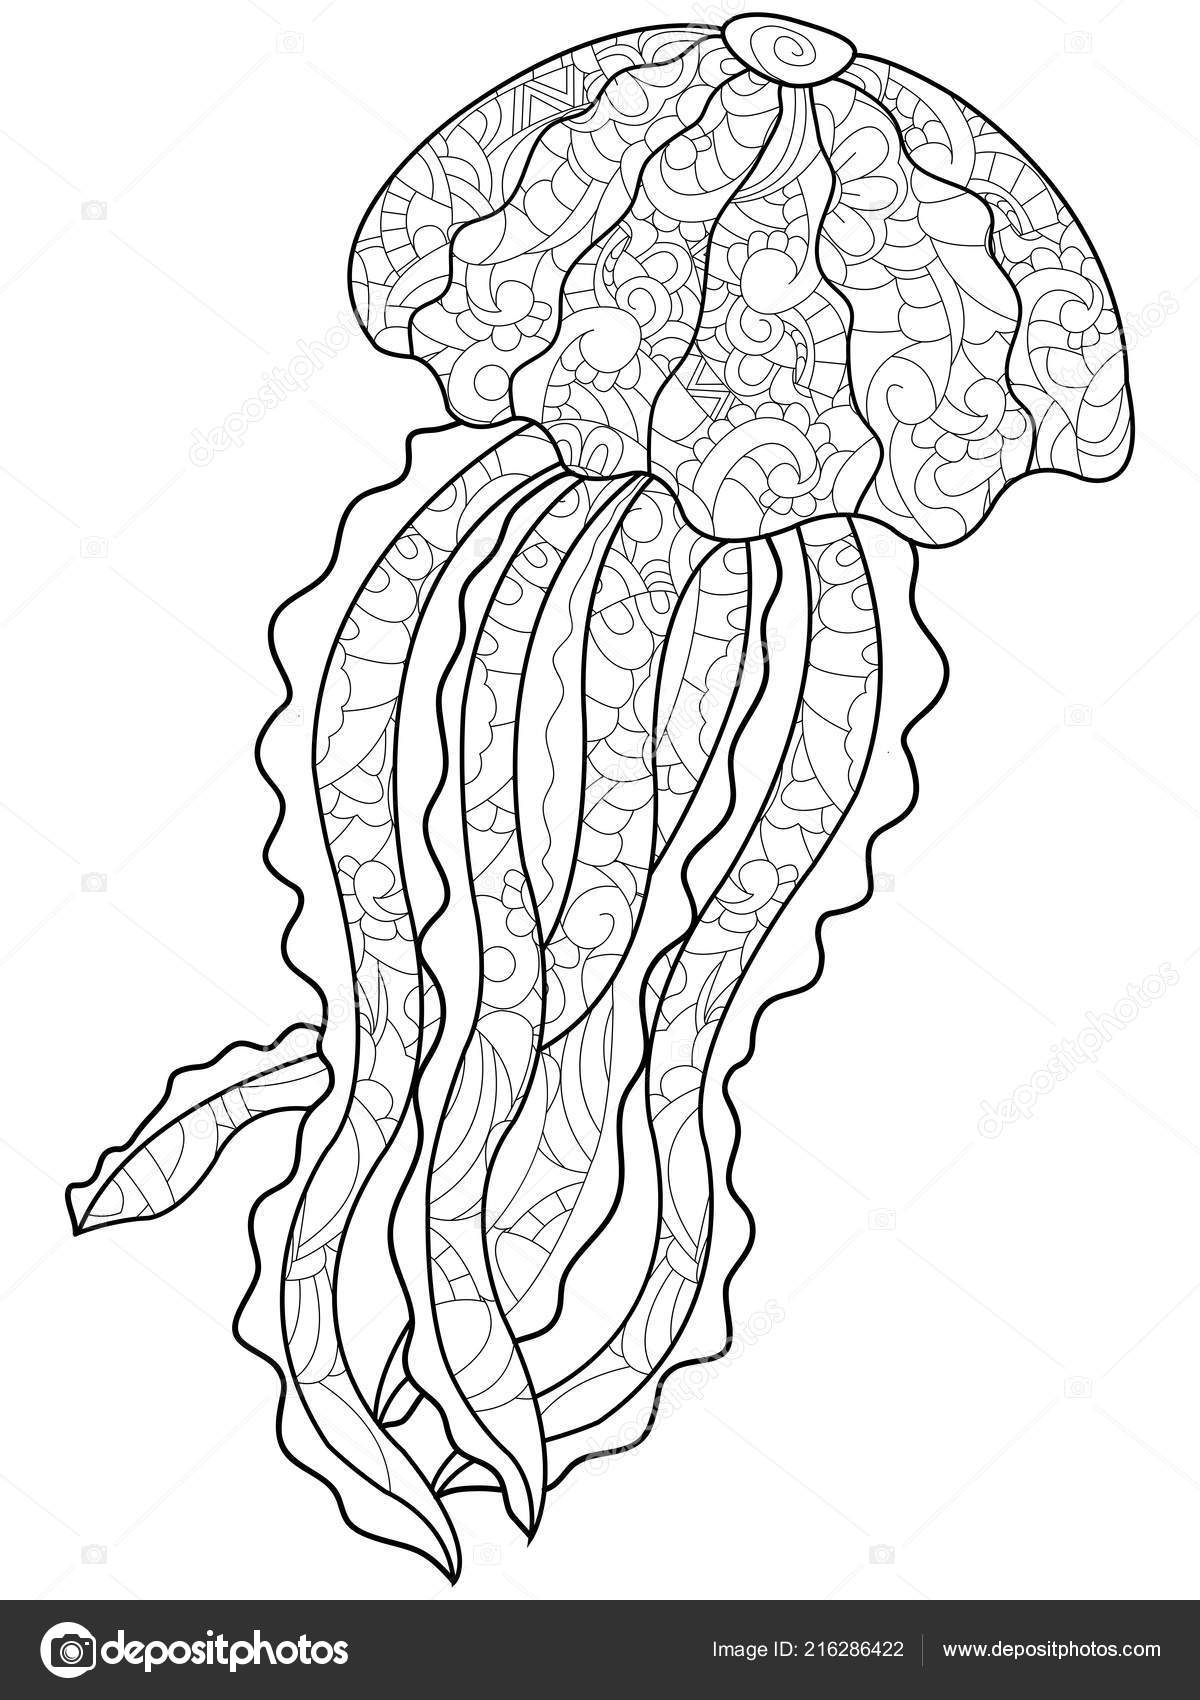 Coloriage Anti Stress Danse.Coloriage Anti Stress Medusa Marine Animal Des Dessin